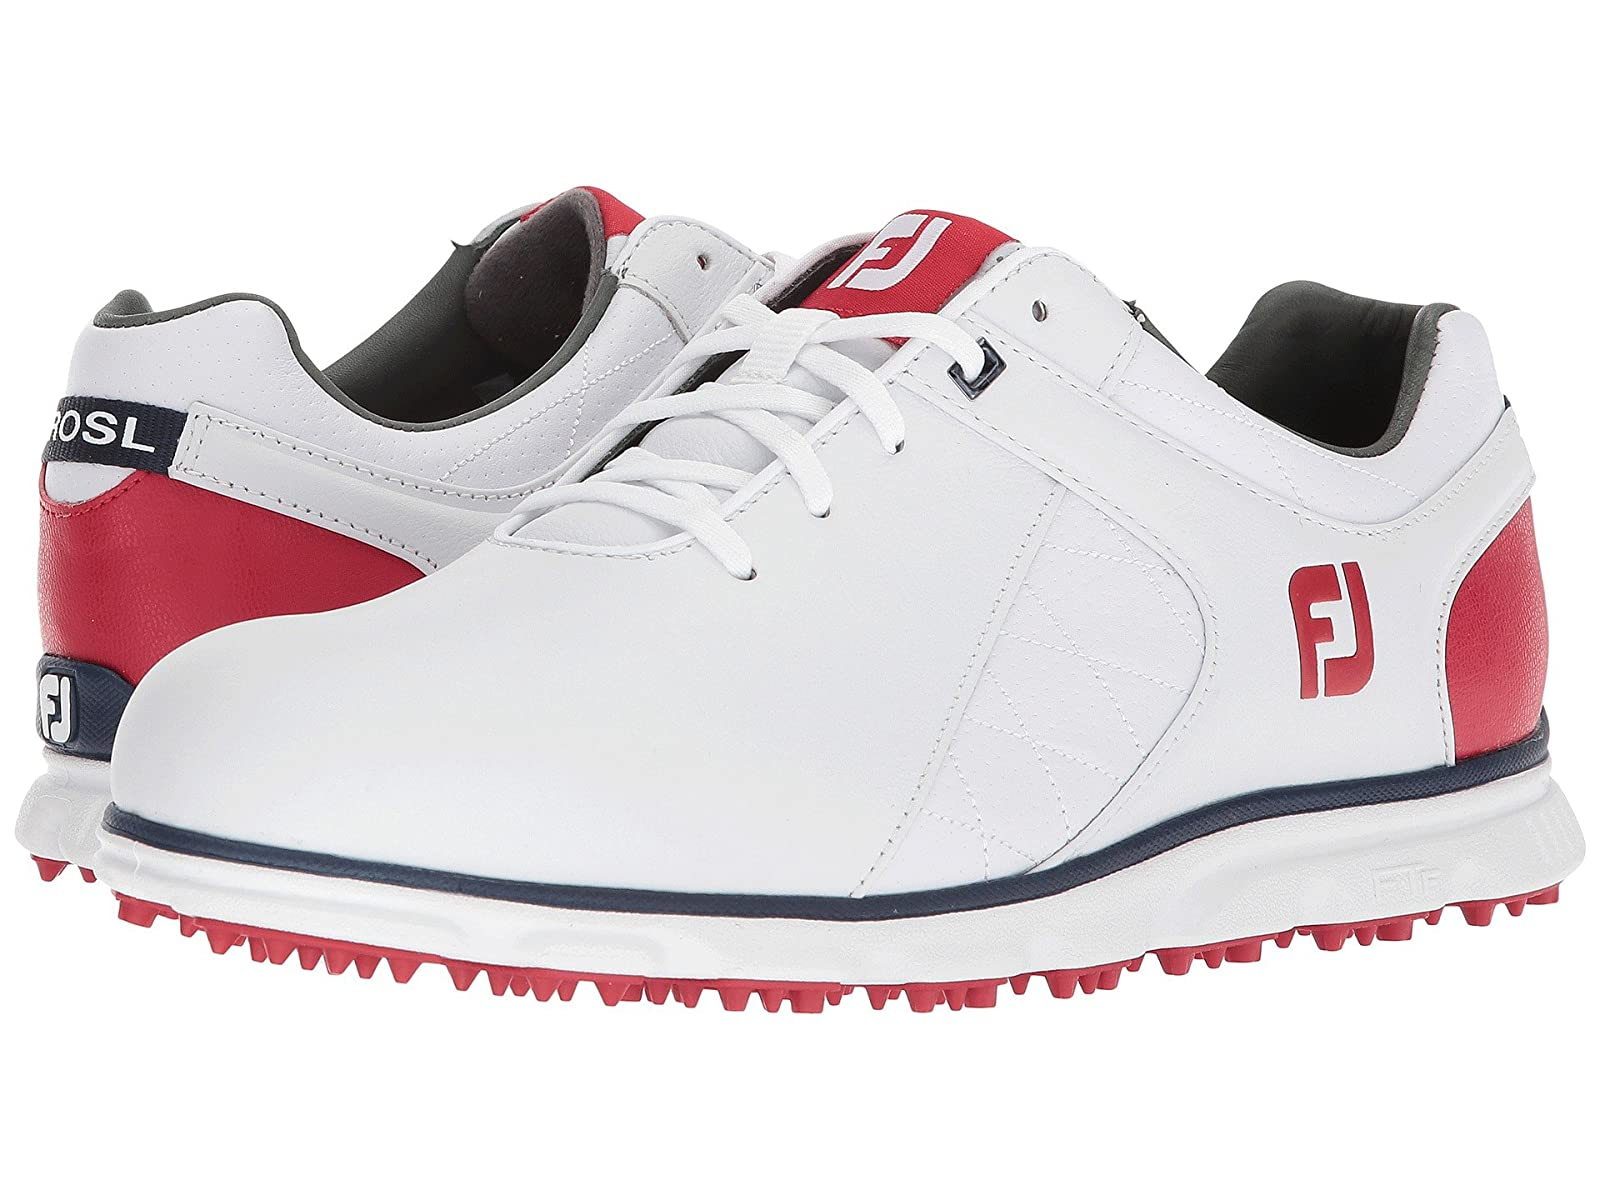 FootJoy Pro SL Spikeless Plain Toe RoverAtmospheric grades have affordable shoes